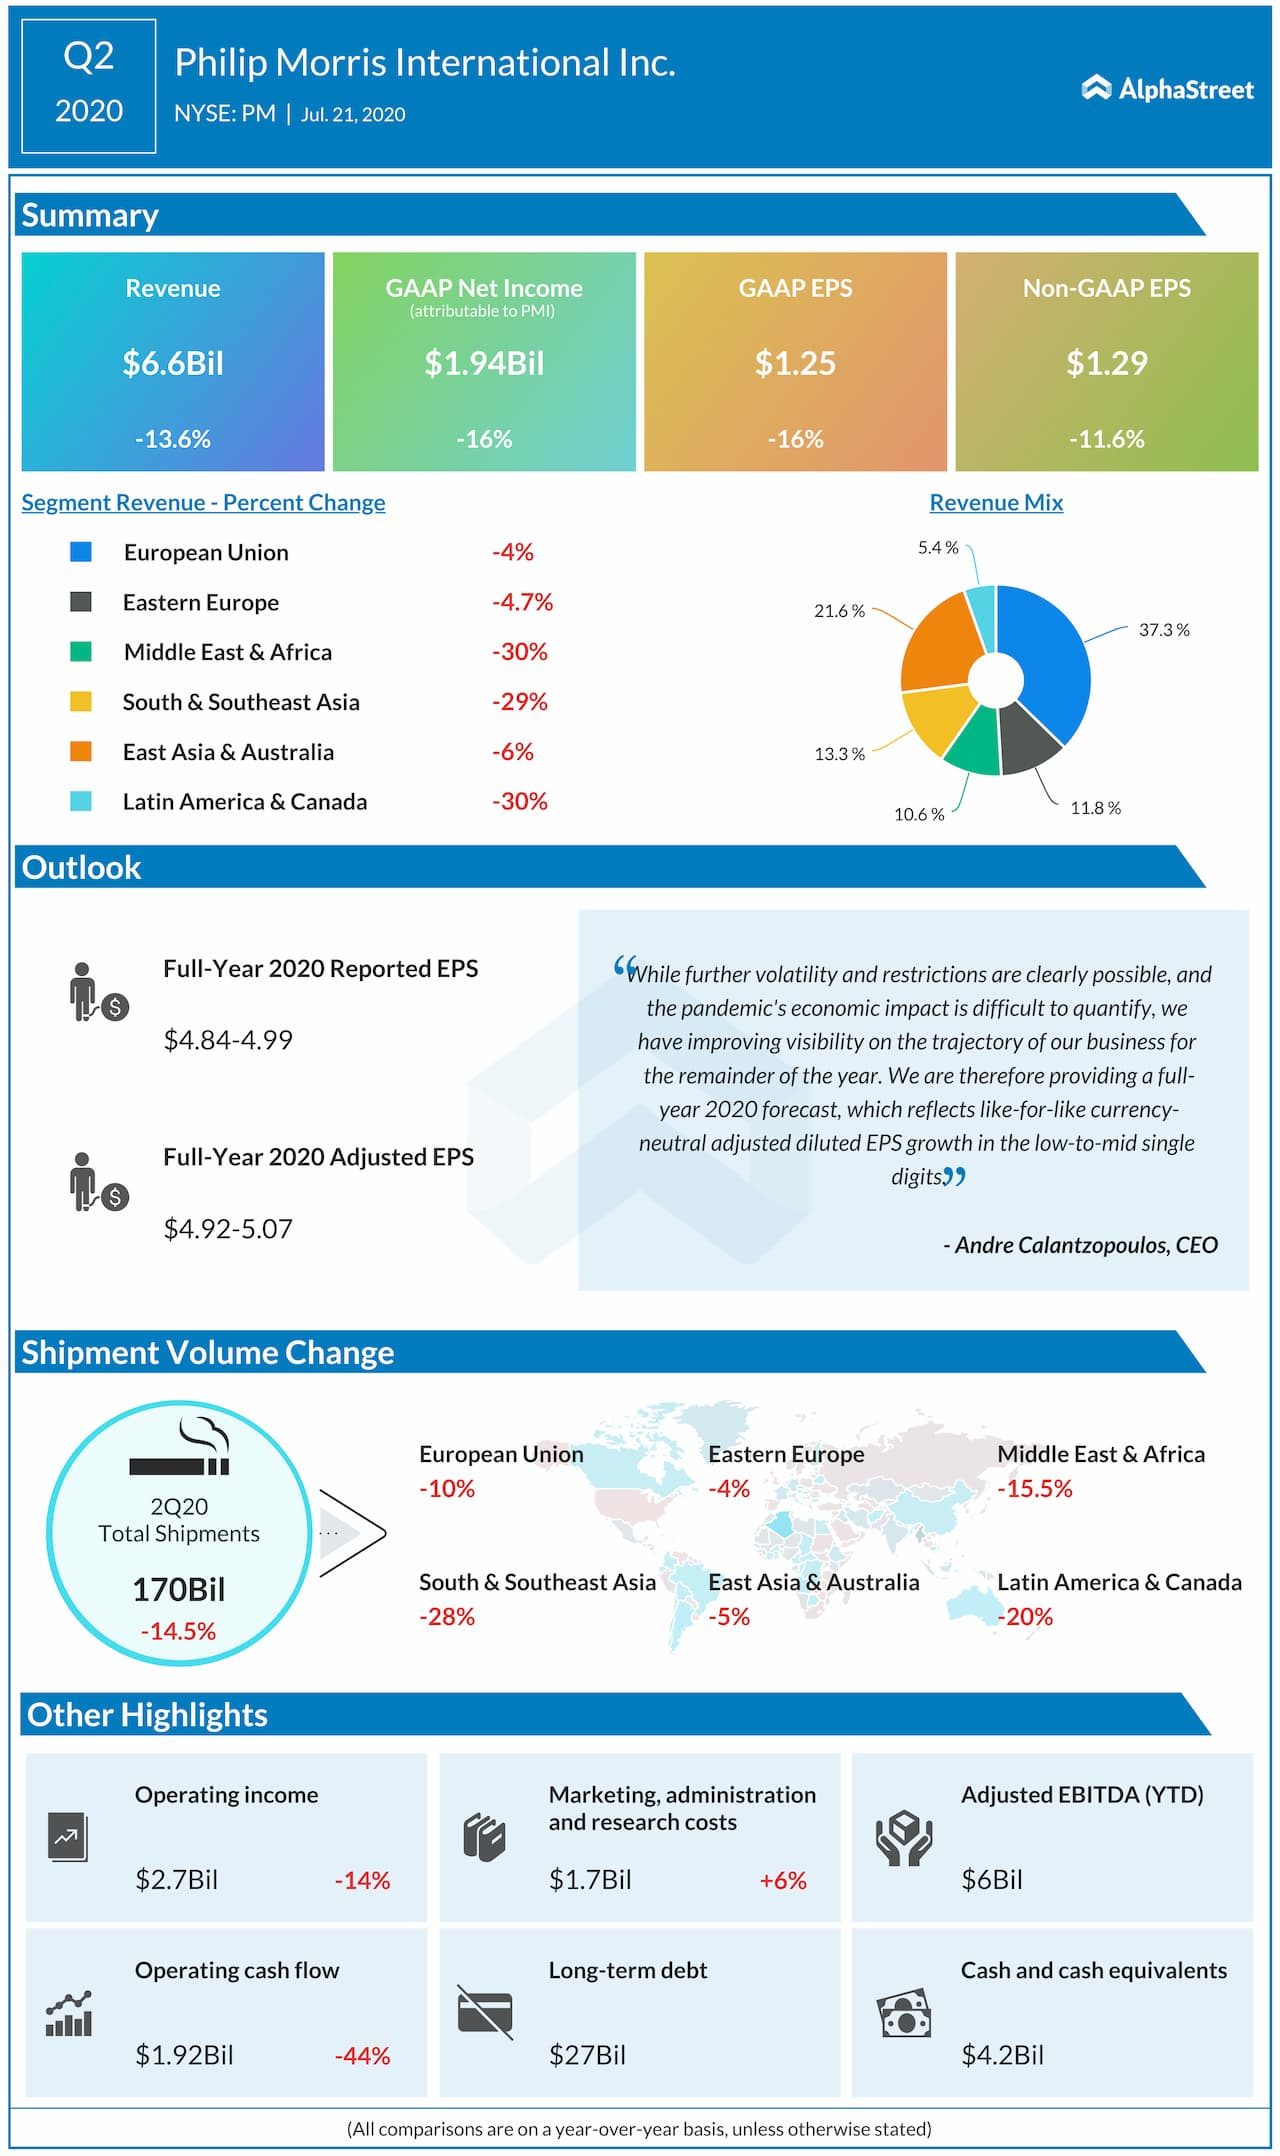 Philip Morris reports Q2 2020 earnings results